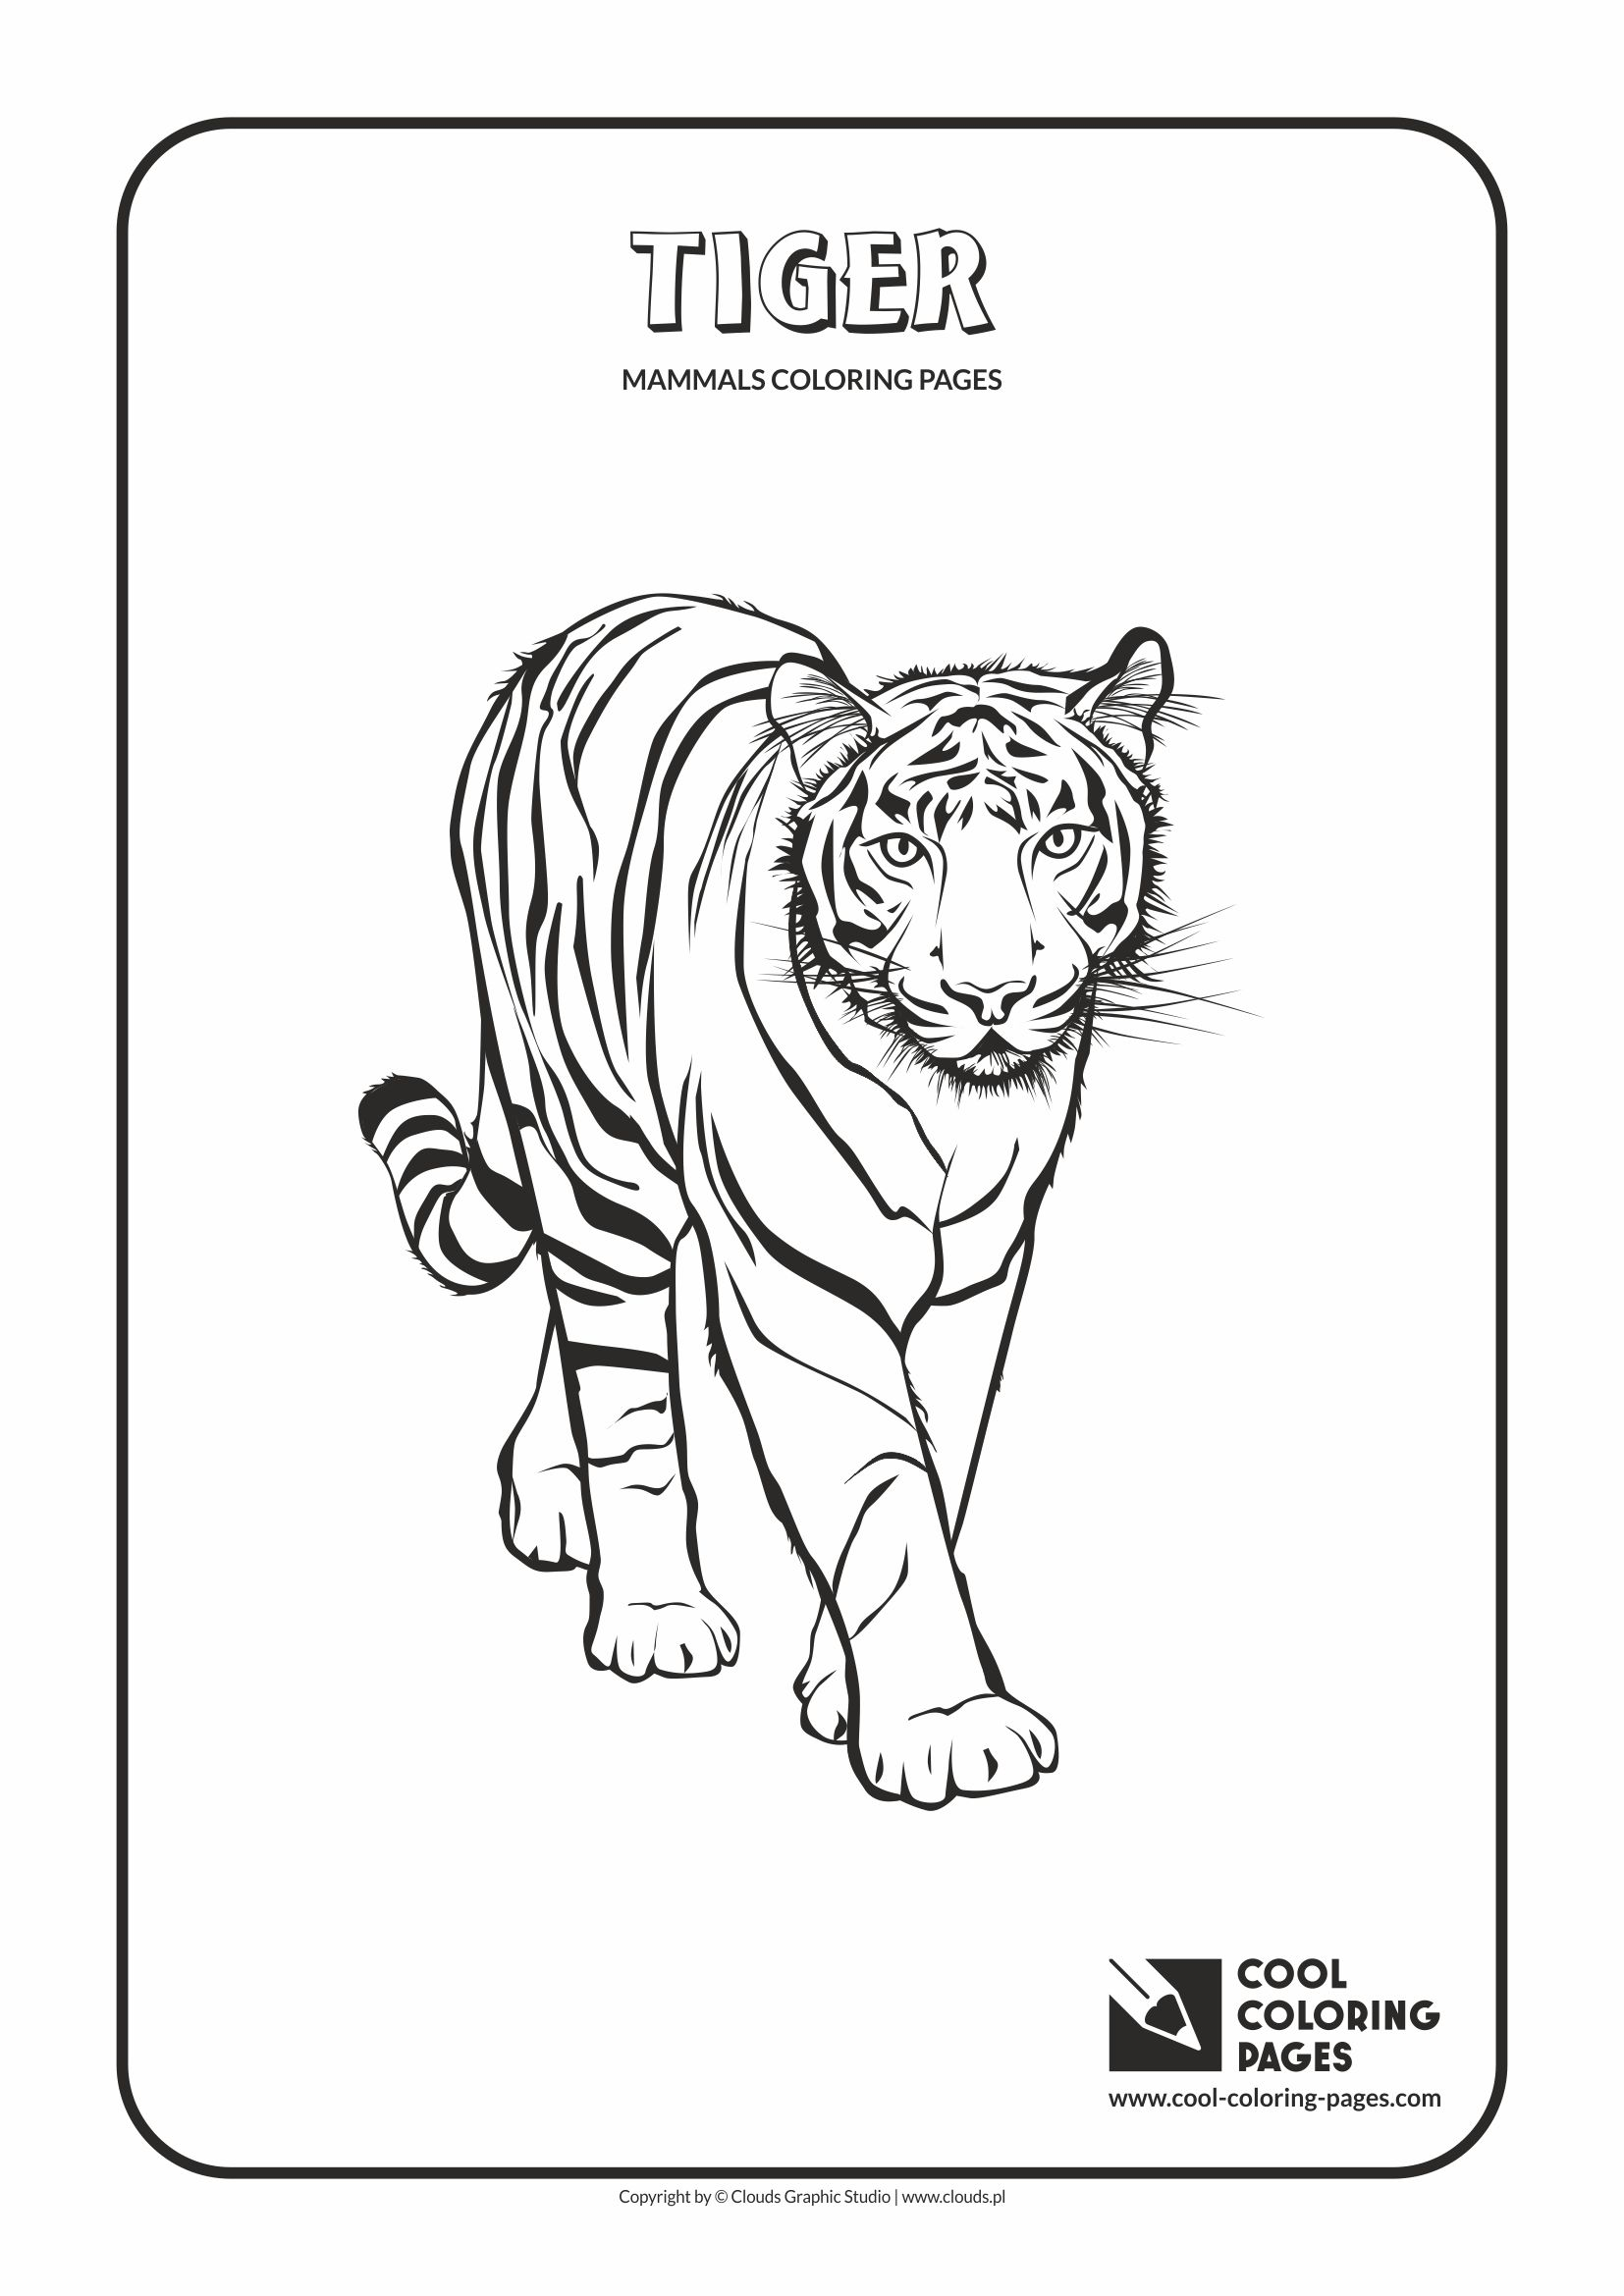 cool coloring pages mammals coloring pages cool coloring pages free educational coloring. Black Bedroom Furniture Sets. Home Design Ideas